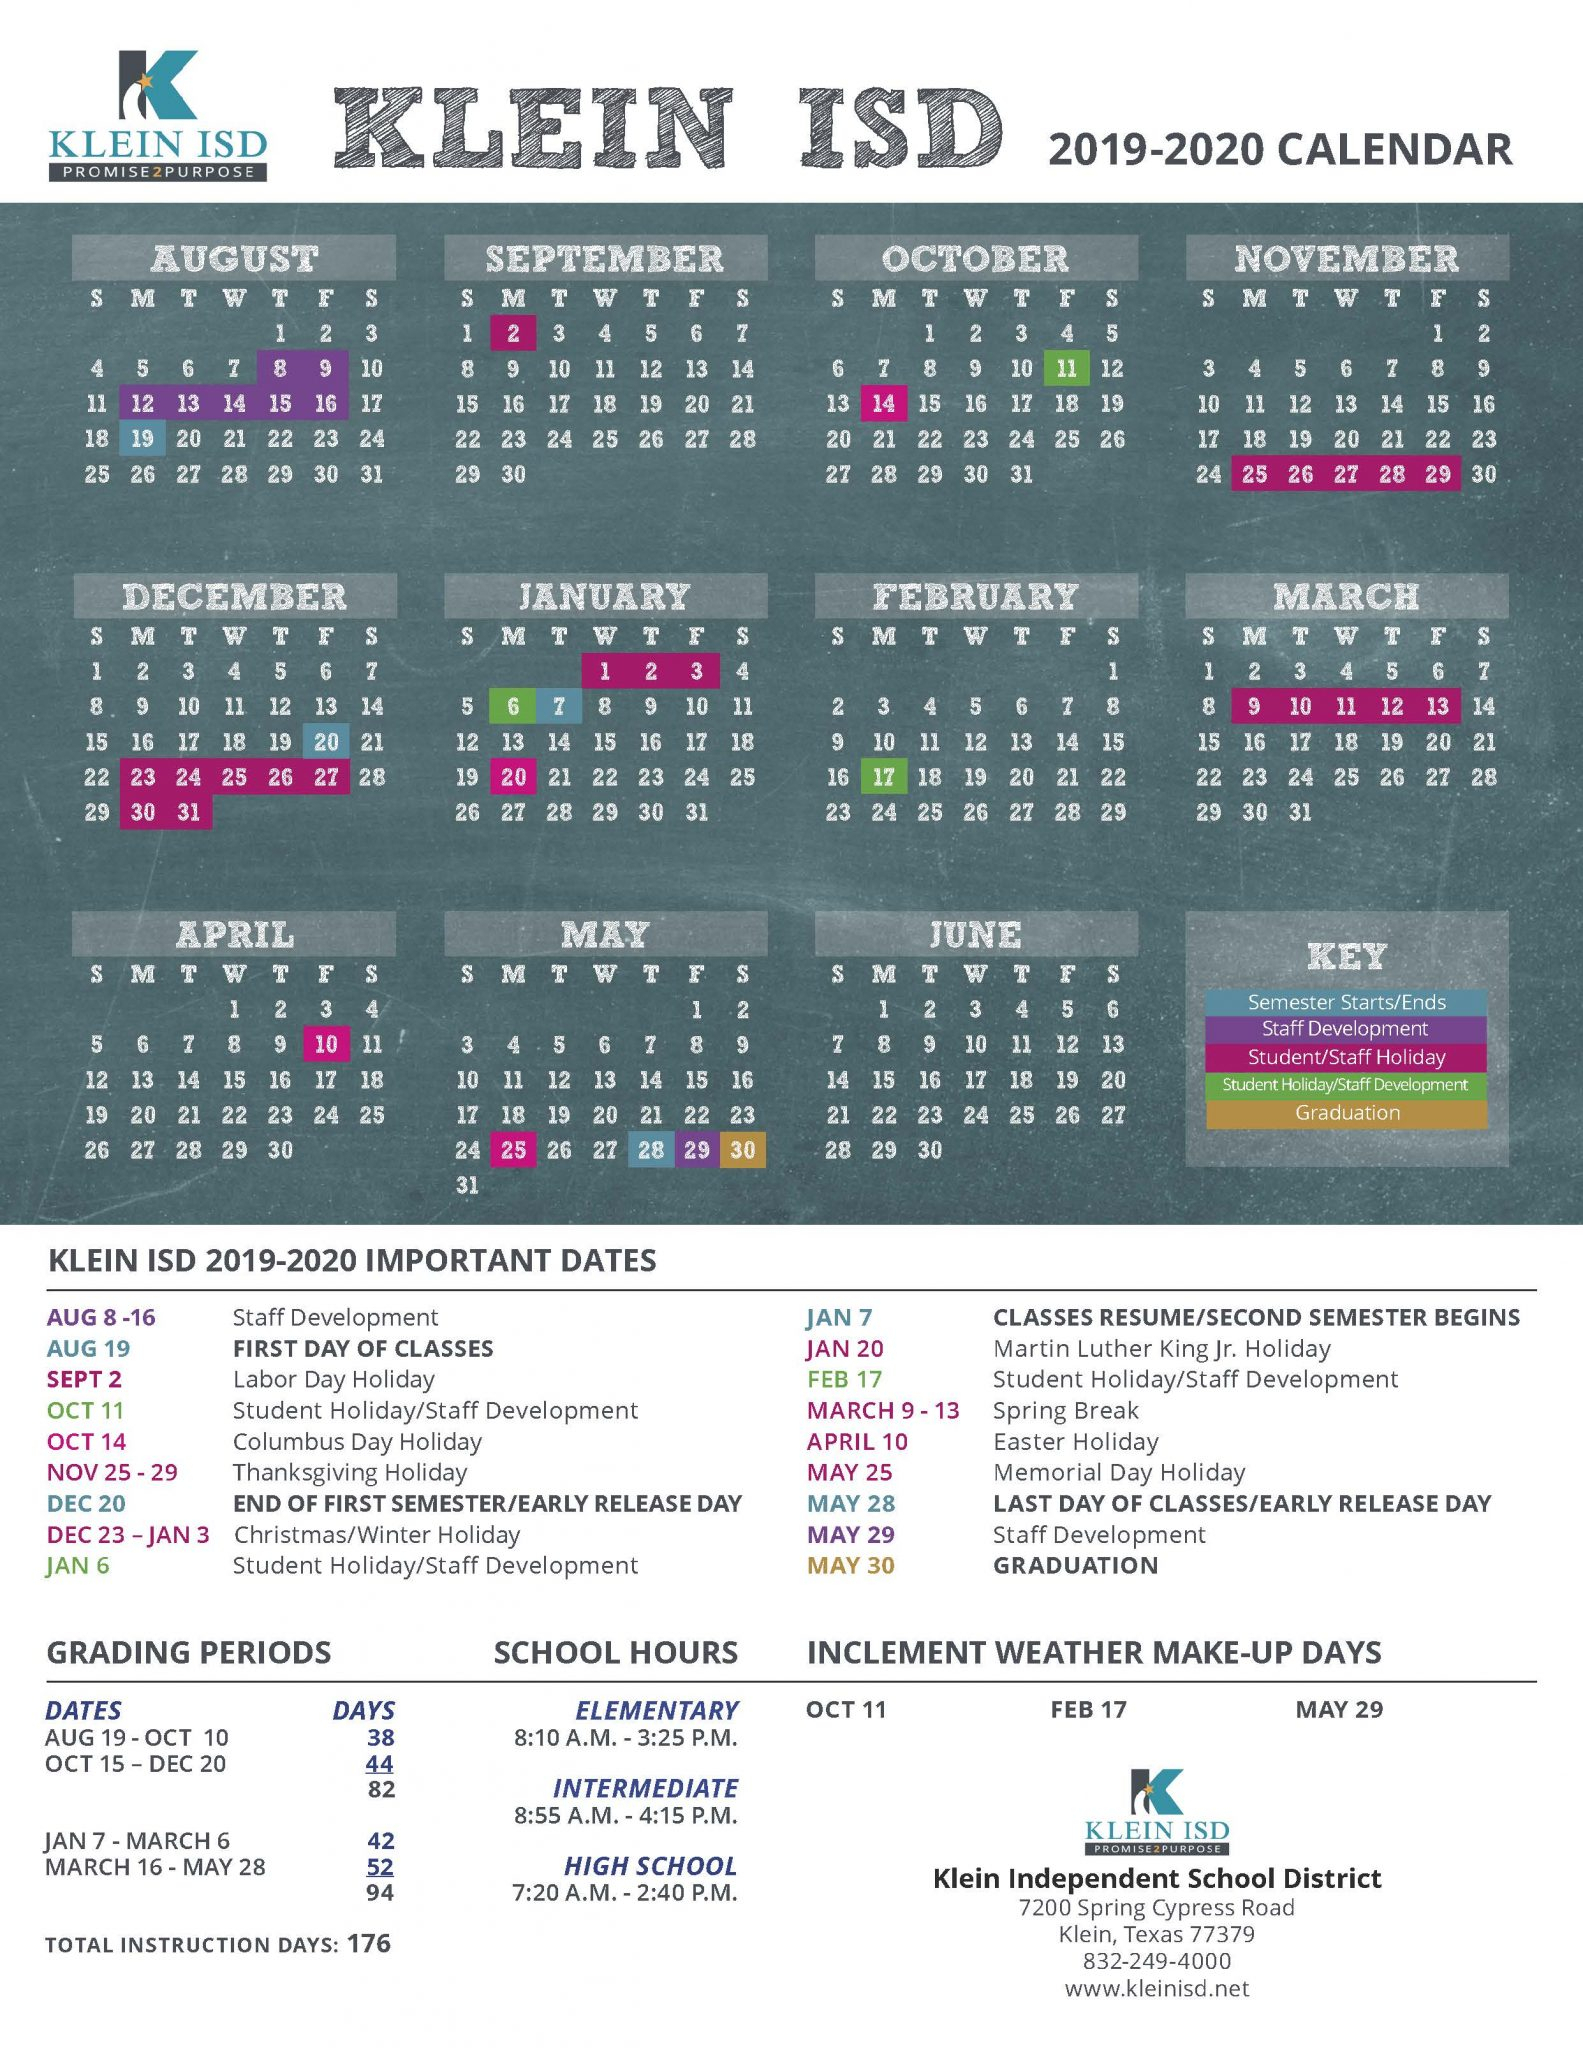 Klein Isd Announces Calendar For 2019-2020 School Year - Cain Live inside Special Days Of The Year 2020